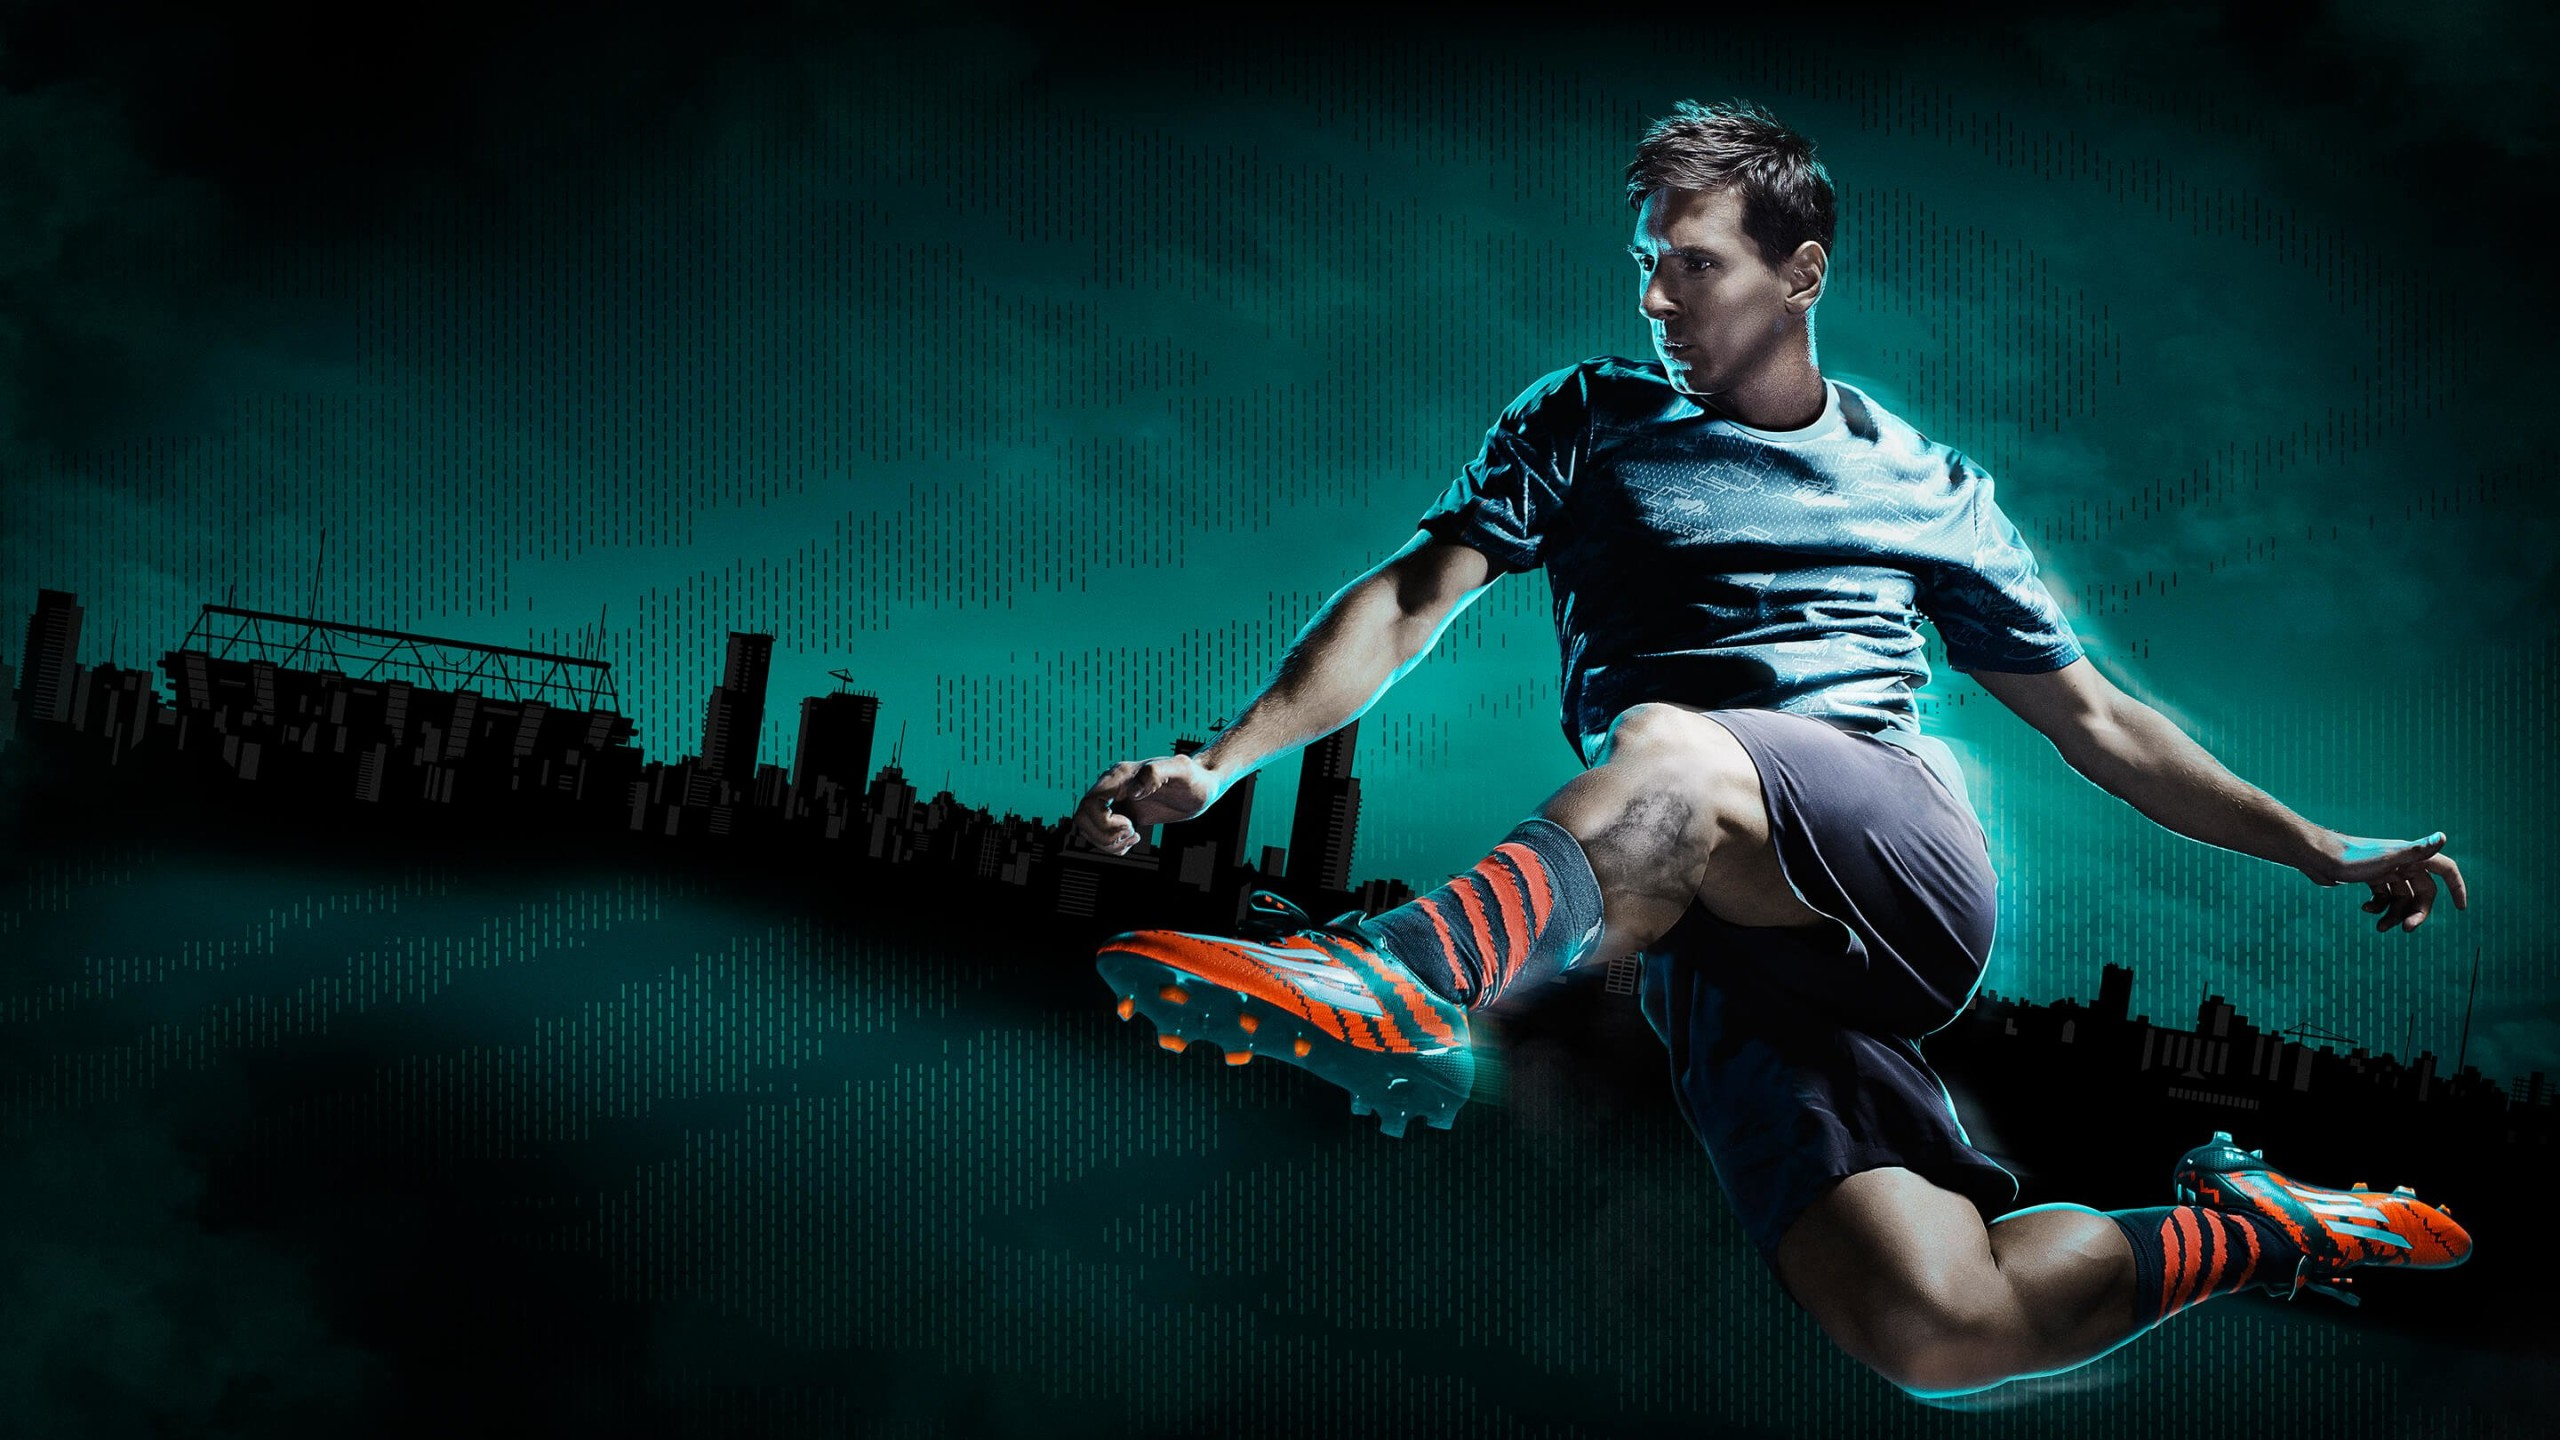 Lionel Messi Adidas Commercial Wallpaper for Social Media YouTube Channel Art